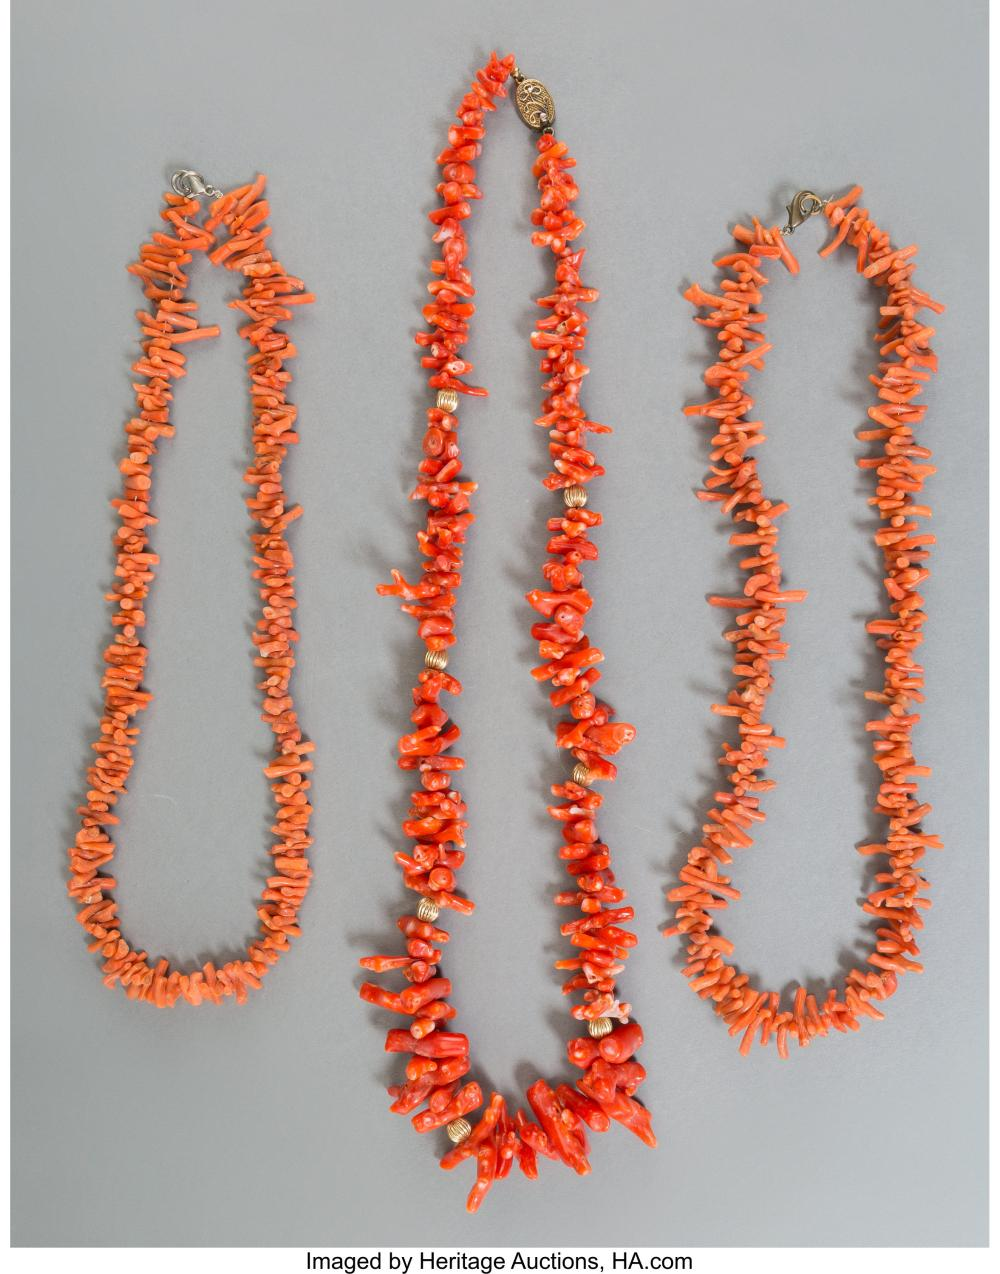 Lot 21268: Three Chinese Natural Coral Necklaces Marks to one clasp: SILVER 23 inches long